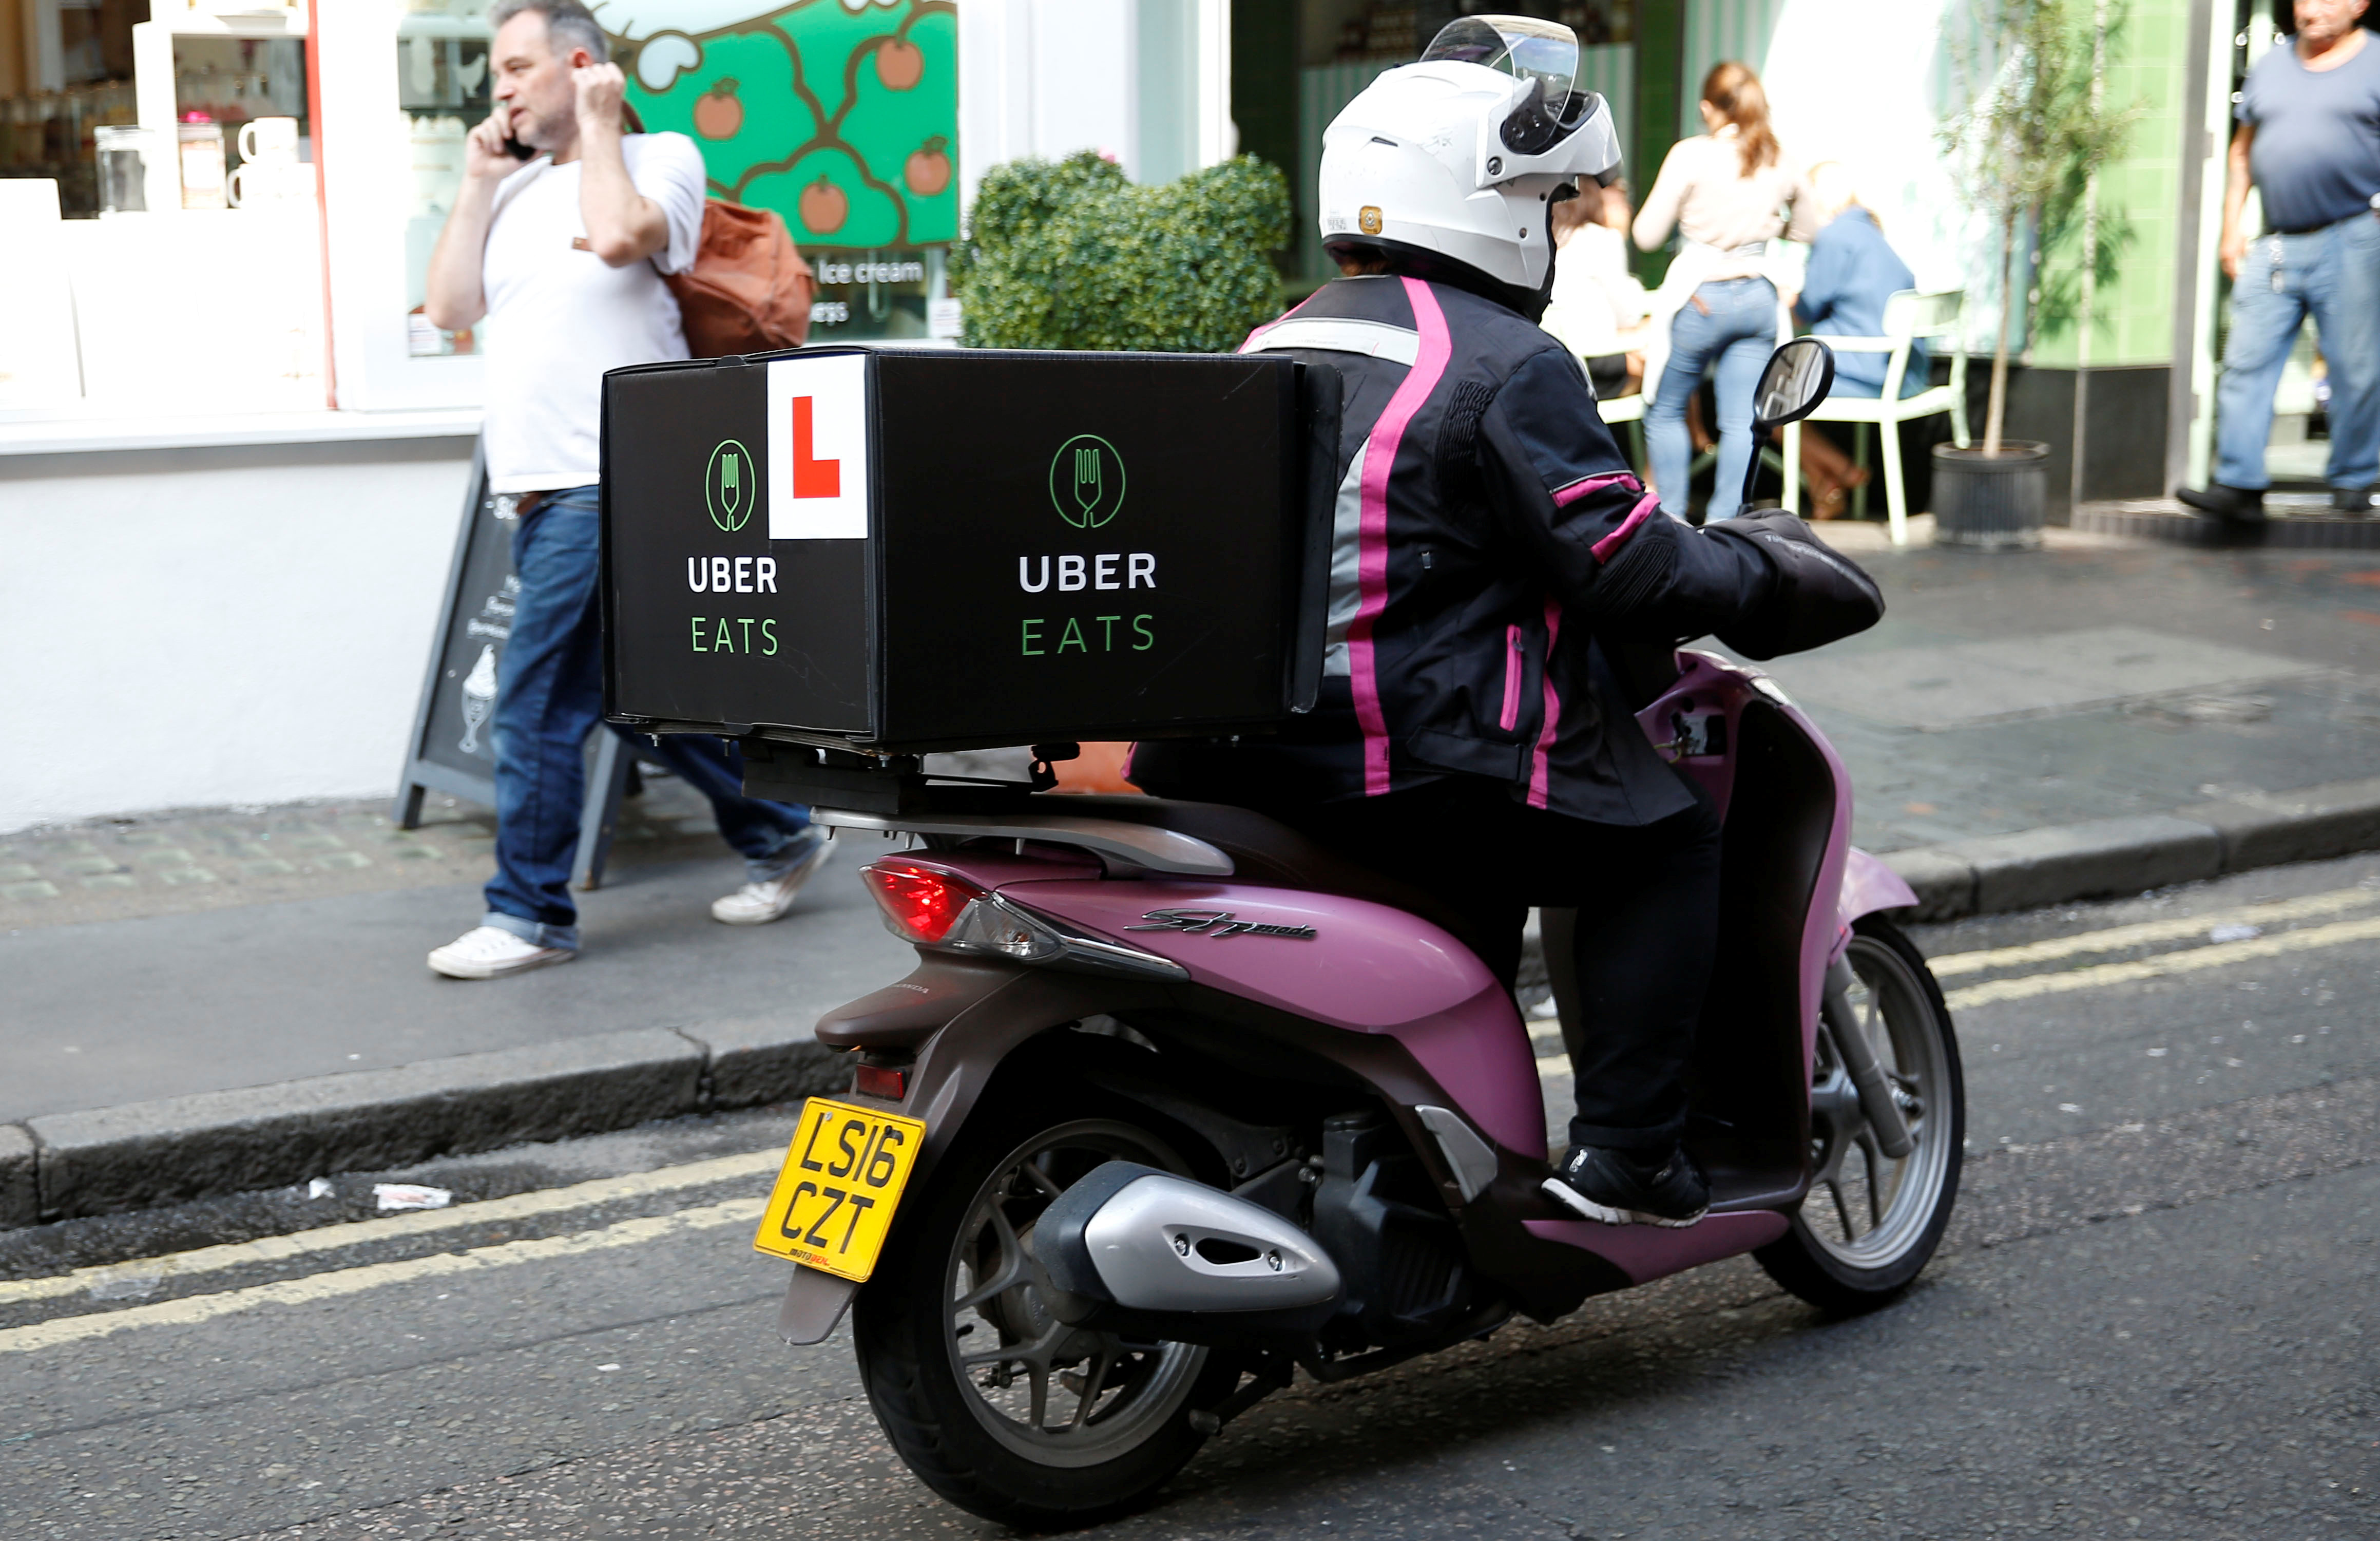 An UberEATS food delivery courier rides her scooter in London on September 7, 2016.